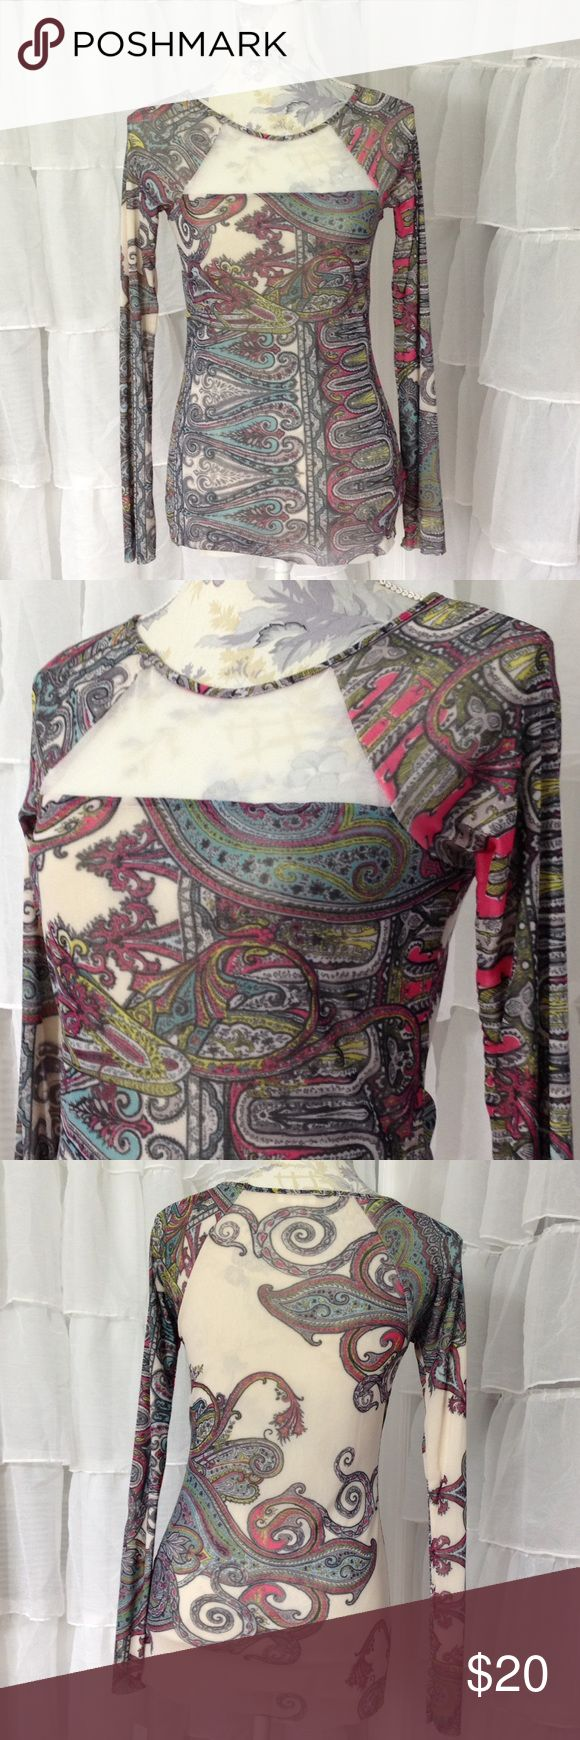 Colorful Paisley Mesh Top This long sleeve shirt is made of a soft, lightweight stretch nylon mesh. It is fully lined with a second layer of mesh. The center front neck area features a cream coloured sheer panel.  New with tags, never worn. Weston Tops Tees - Long Sleeve